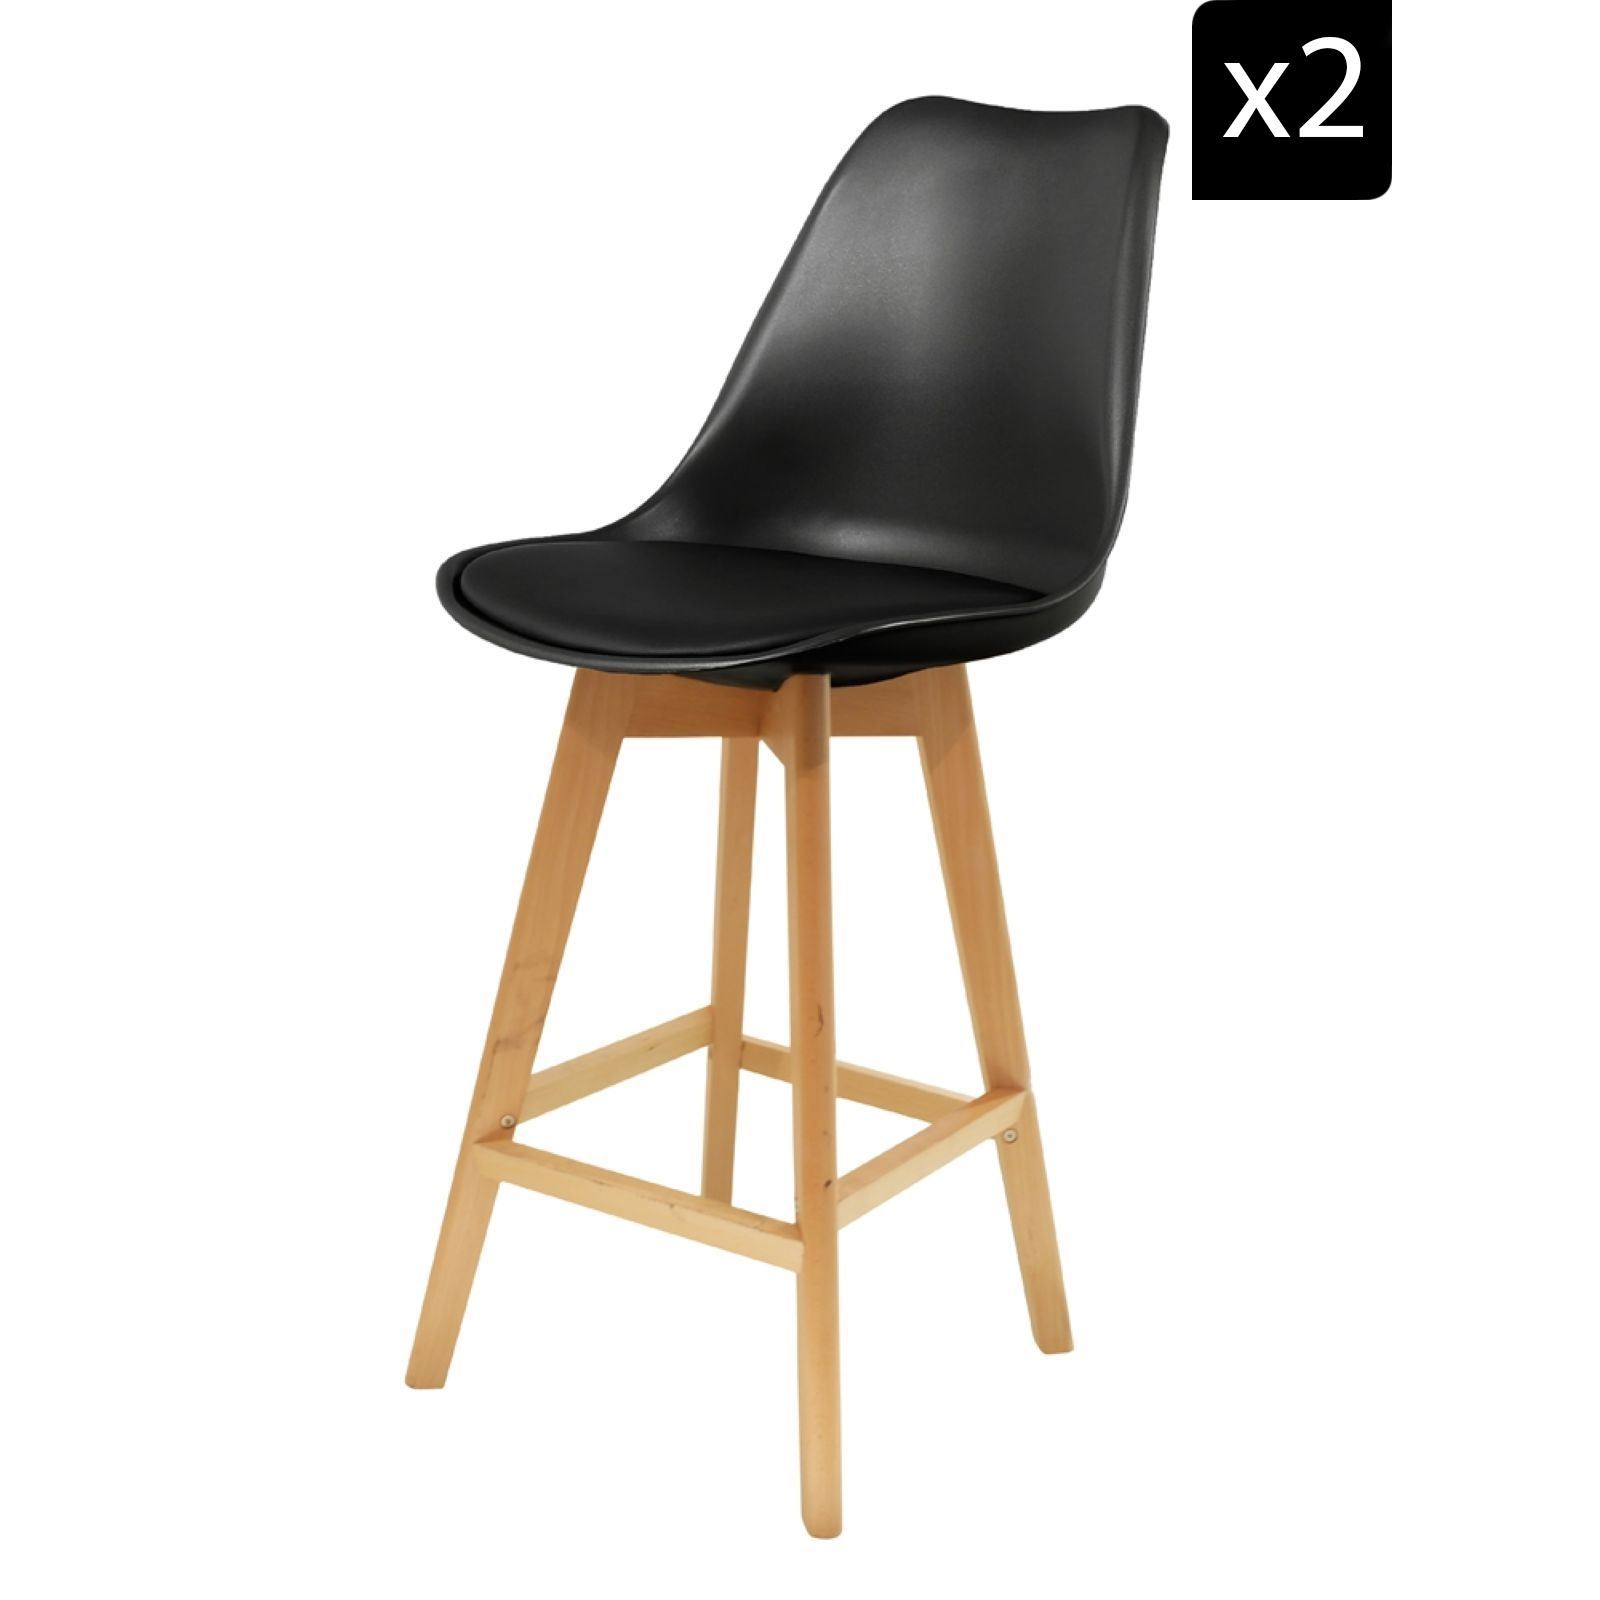 Chaises Scandinave Noir Home Deco Art Lot De 2 Chaises De Bar Scandinaves Noir